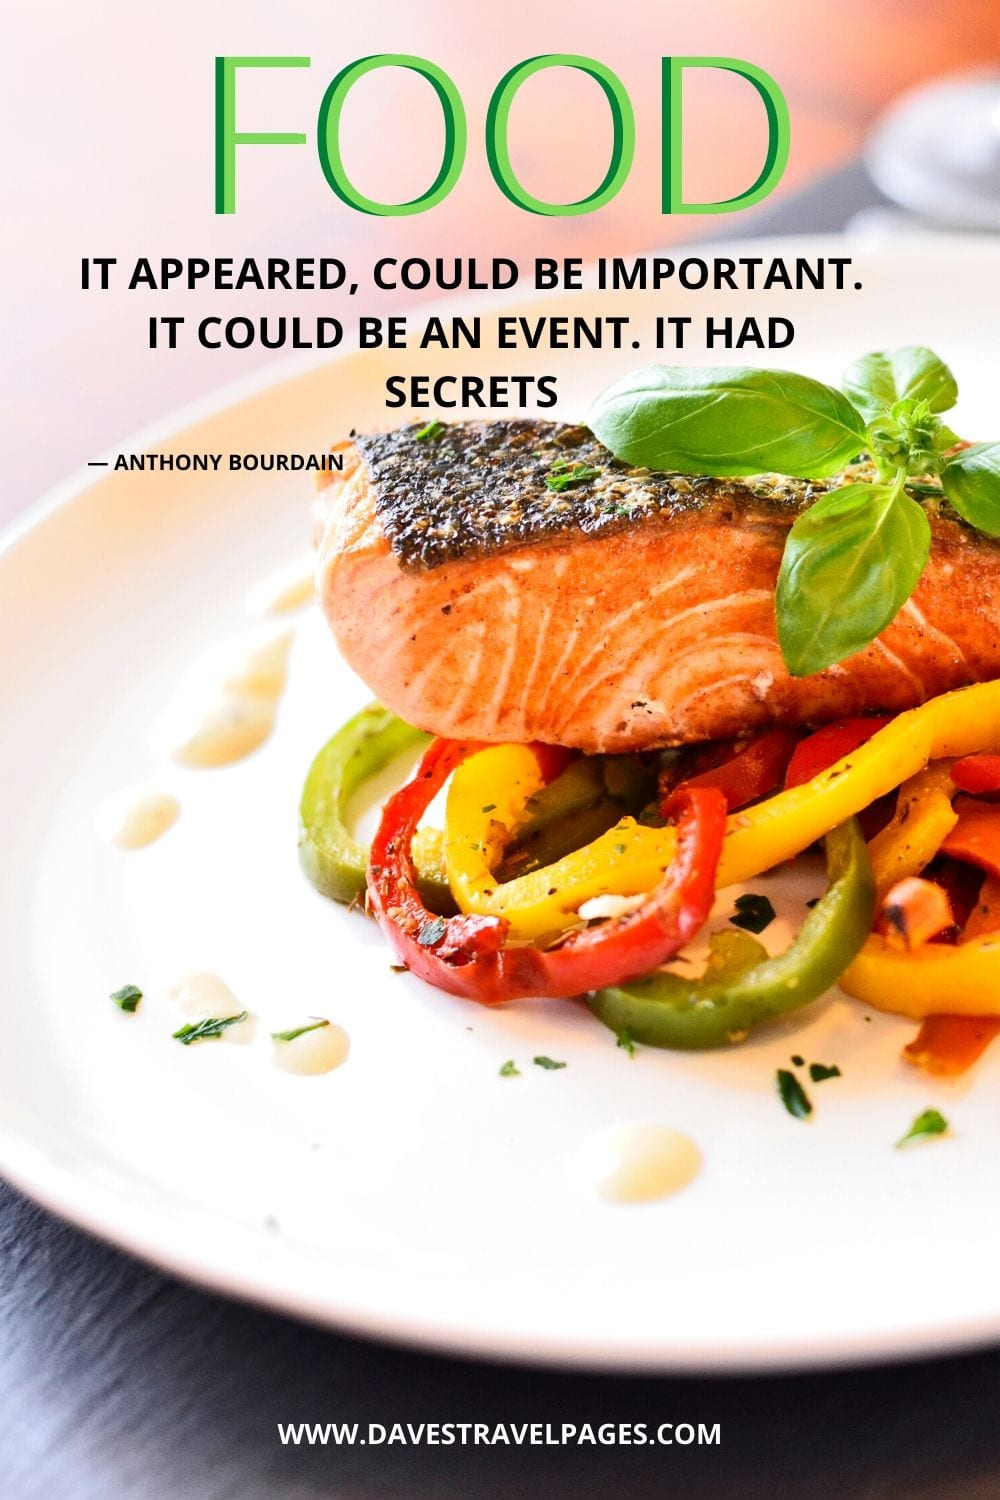 """""""Food, it appeared, could be important. It could be an event. It had secrets.""""― Anthony Bourdain quote about food"""